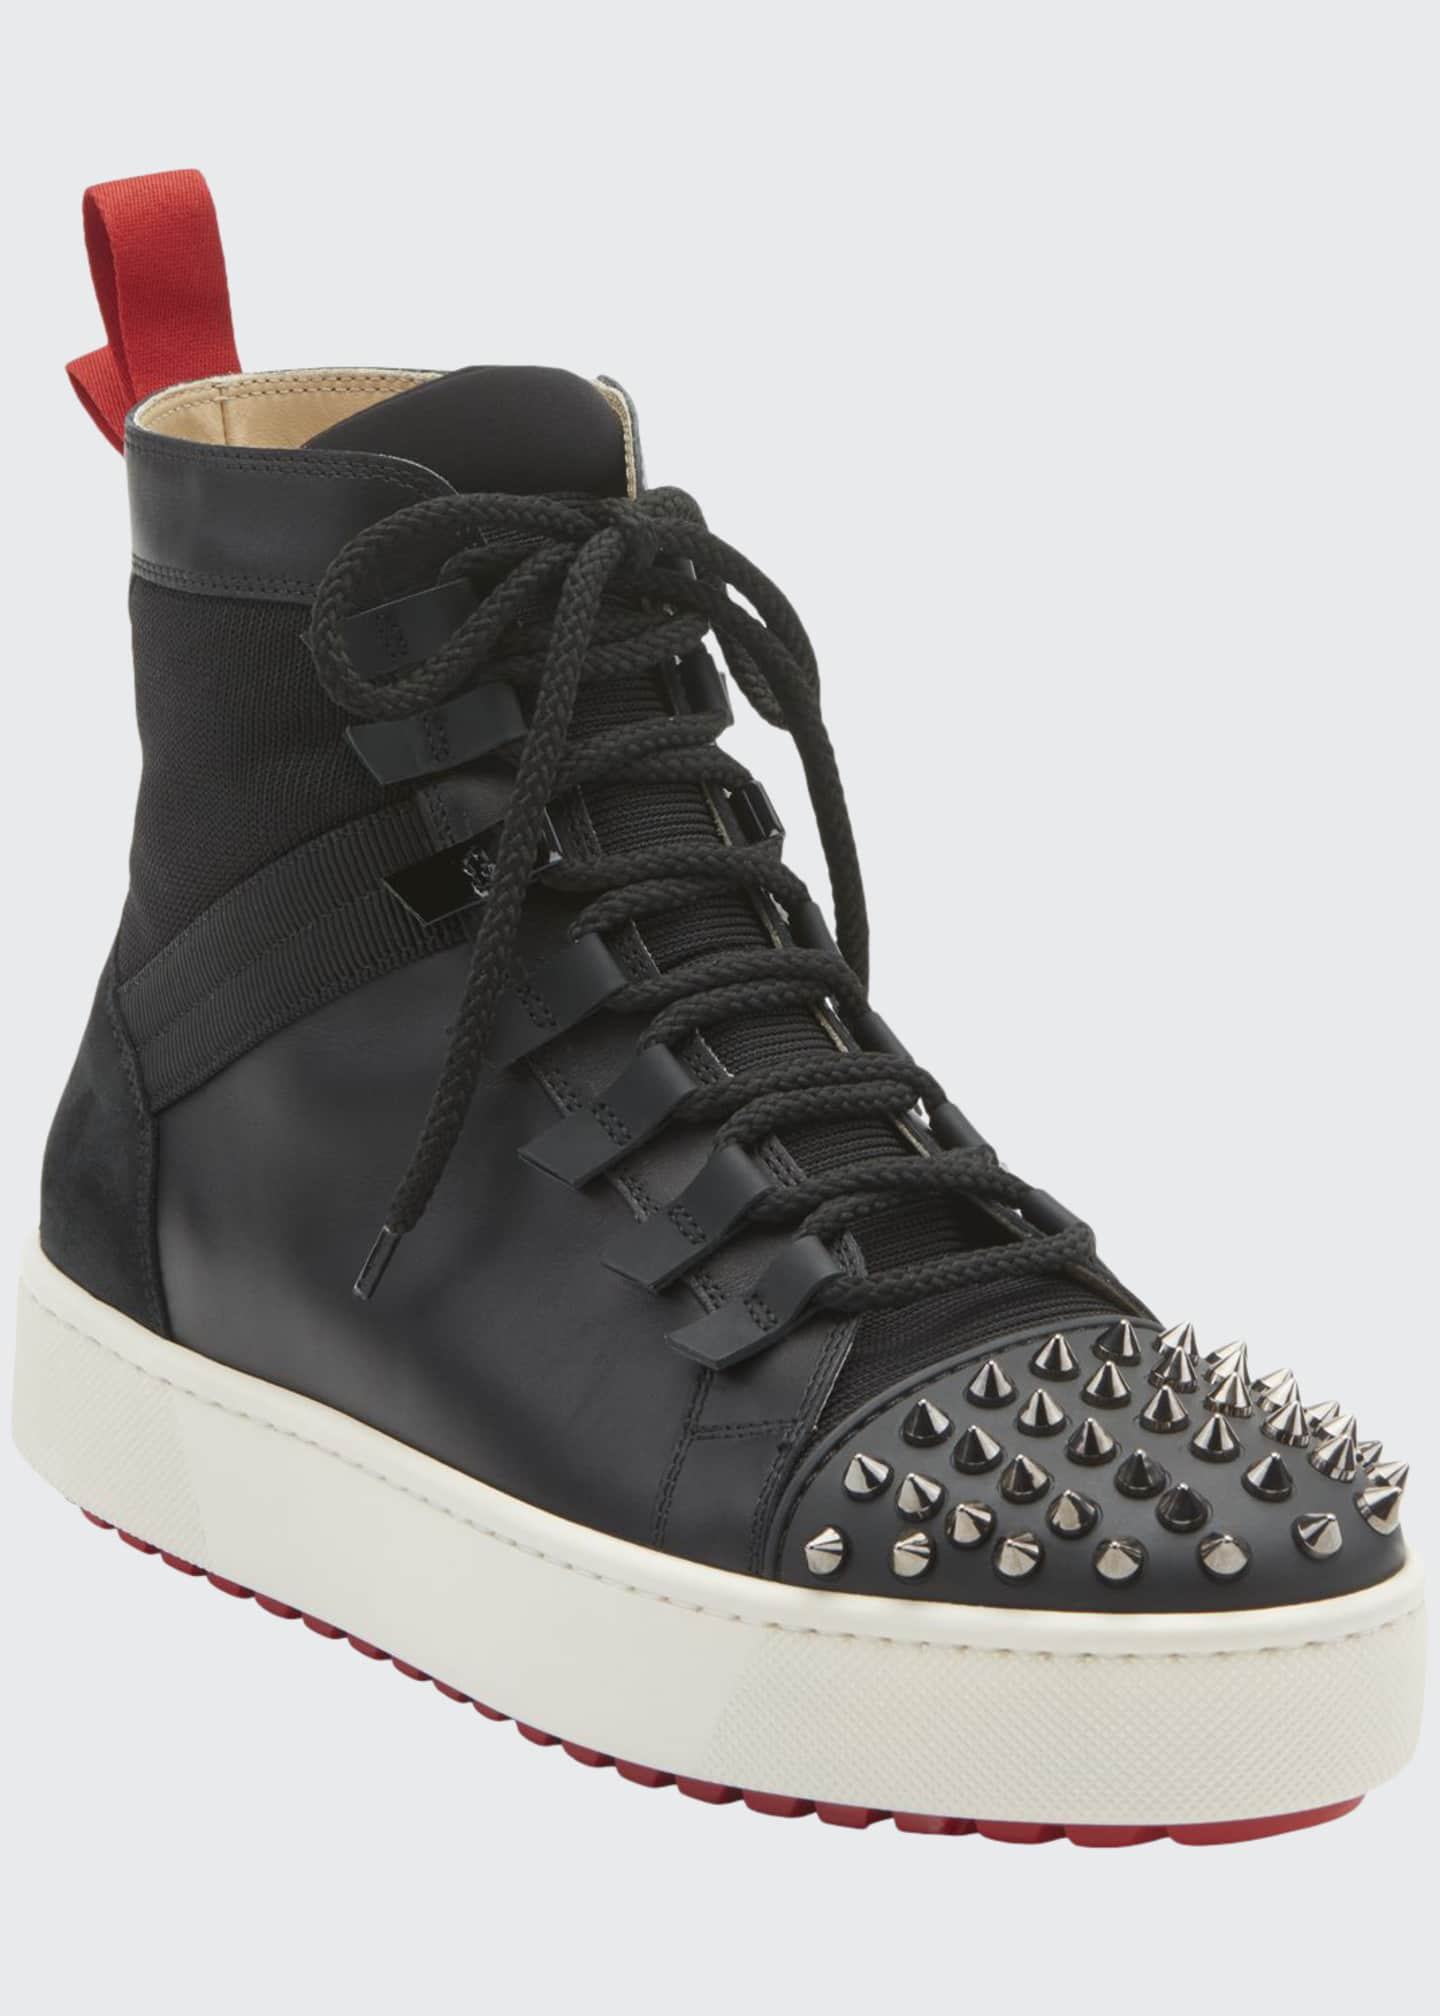 Image 1 of 2: Men's Spike Leather Red Sole Trainer Sneakers